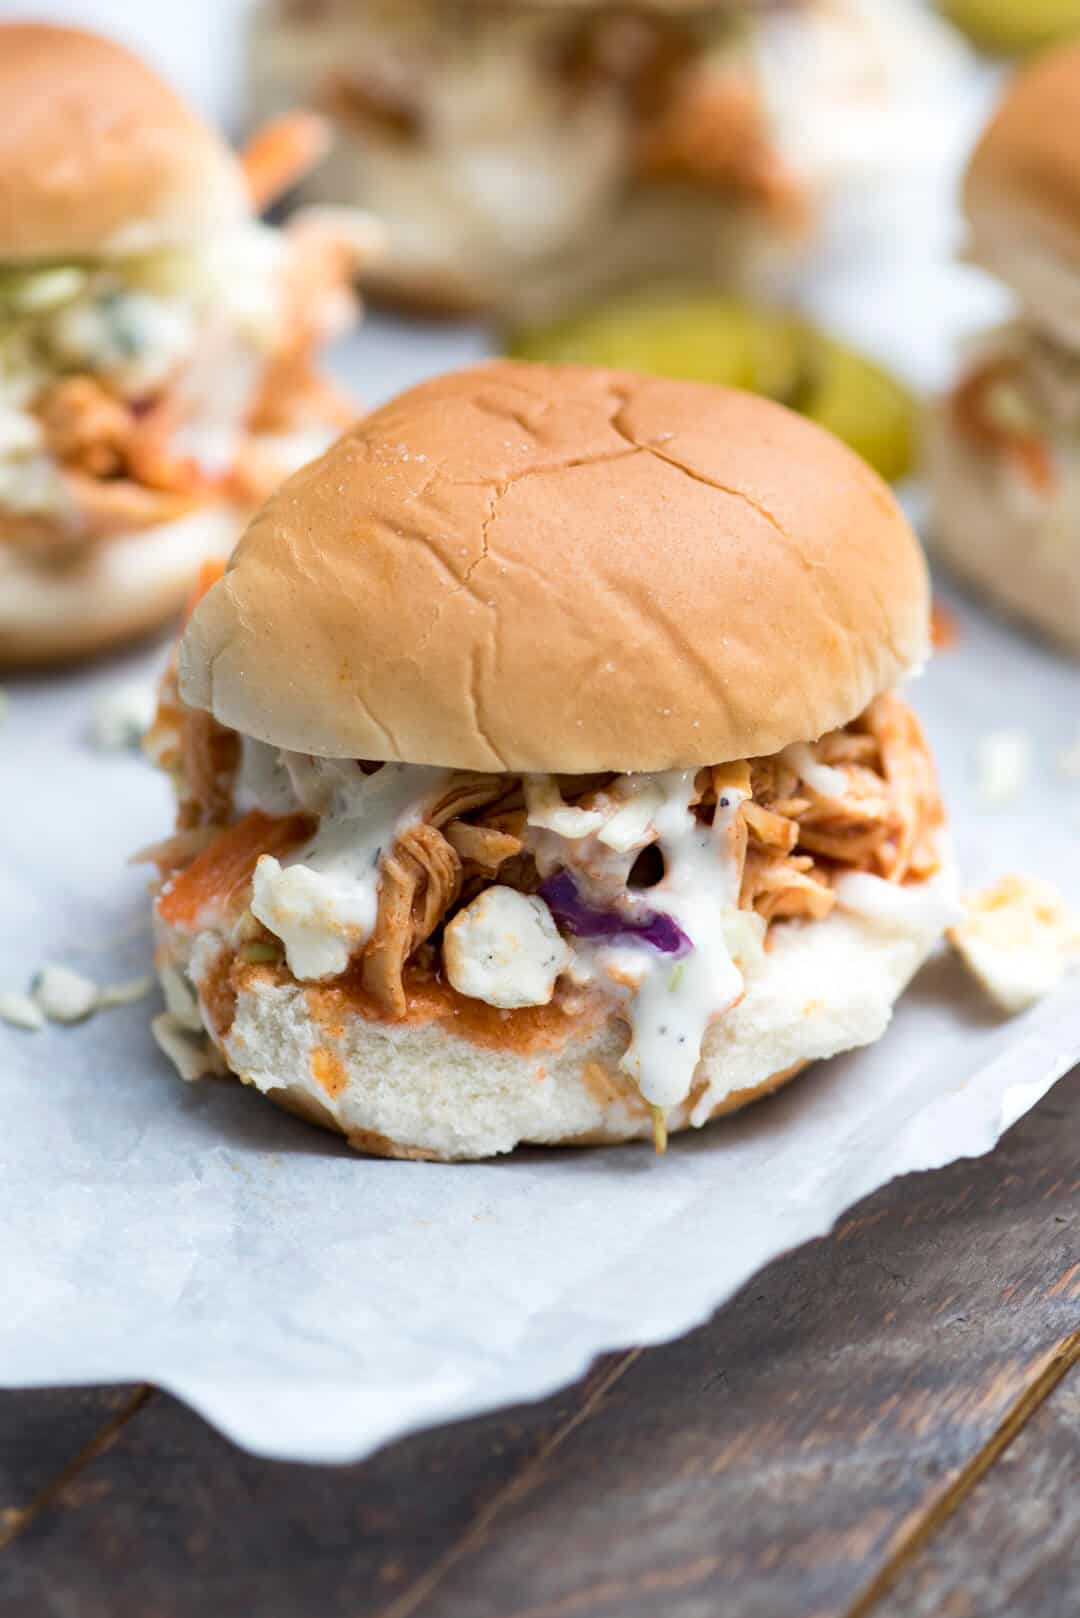 Slow Cooker BBQ Buffalo Chicken Sliders topped with crunchy coleslaw, a drizzle of Ranch dressing and crumbled blue cheese. Perfect for your game day menu!